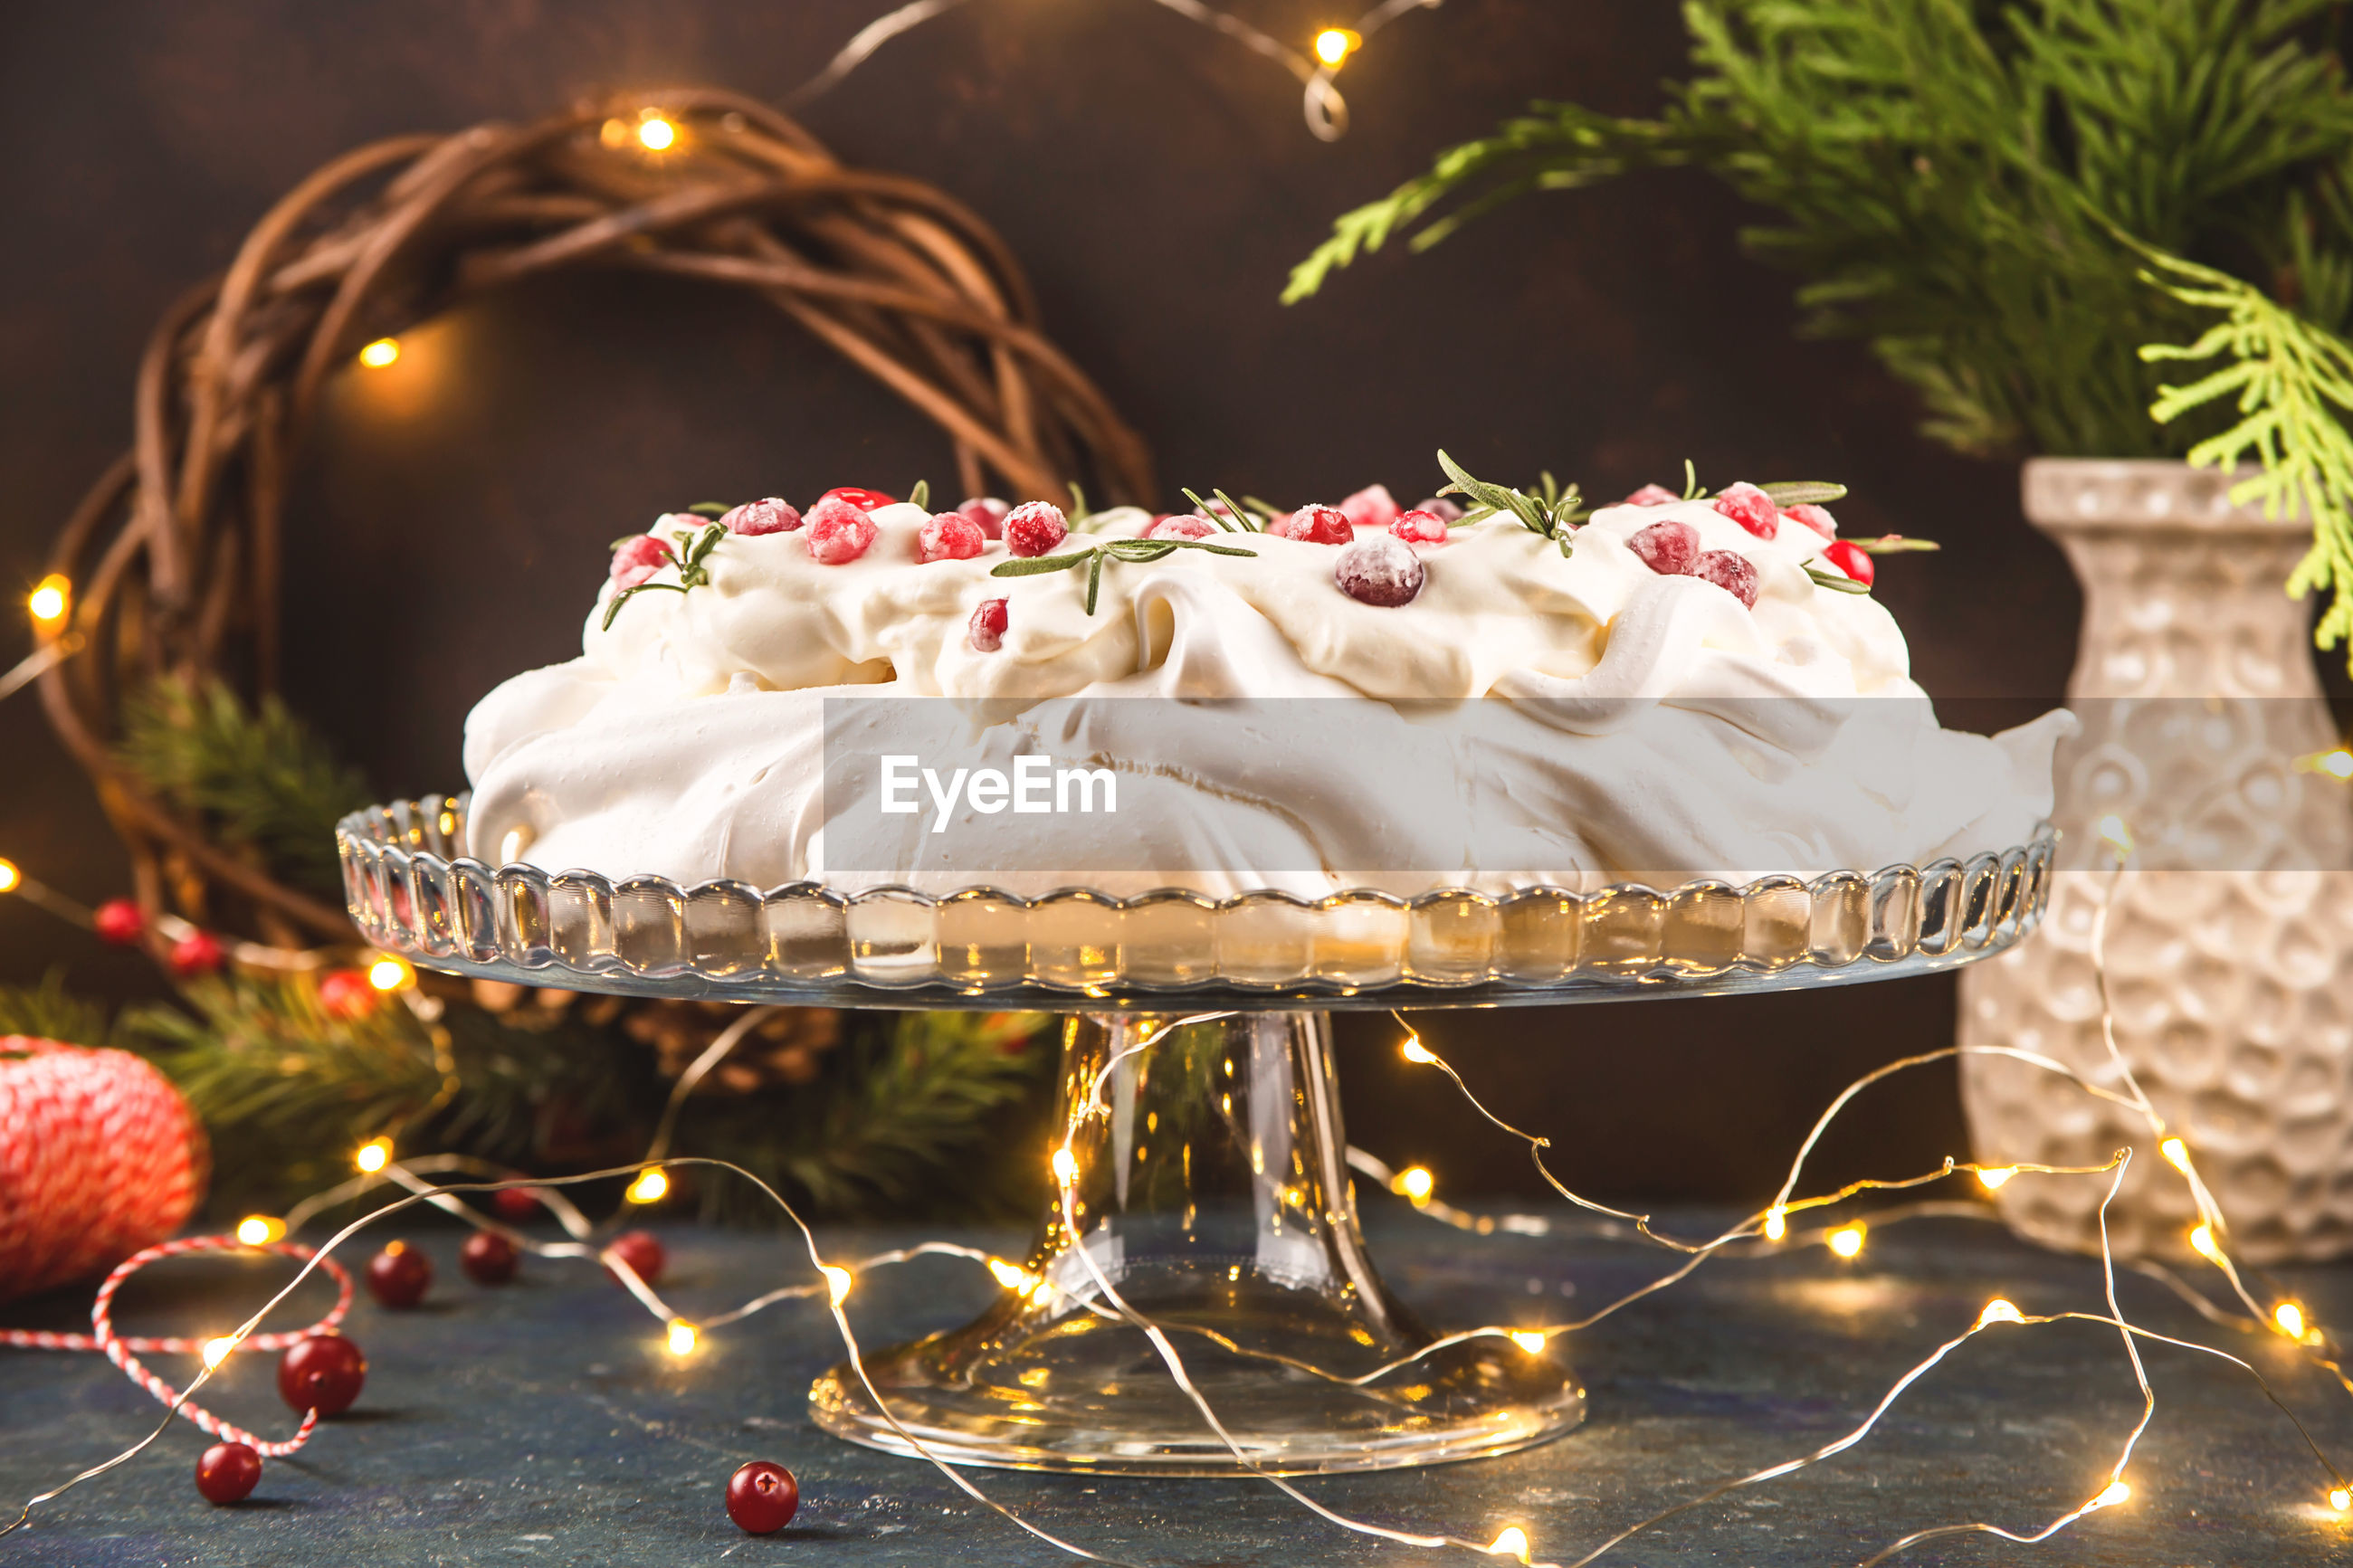 View of cake with plant and christmas lighting on table